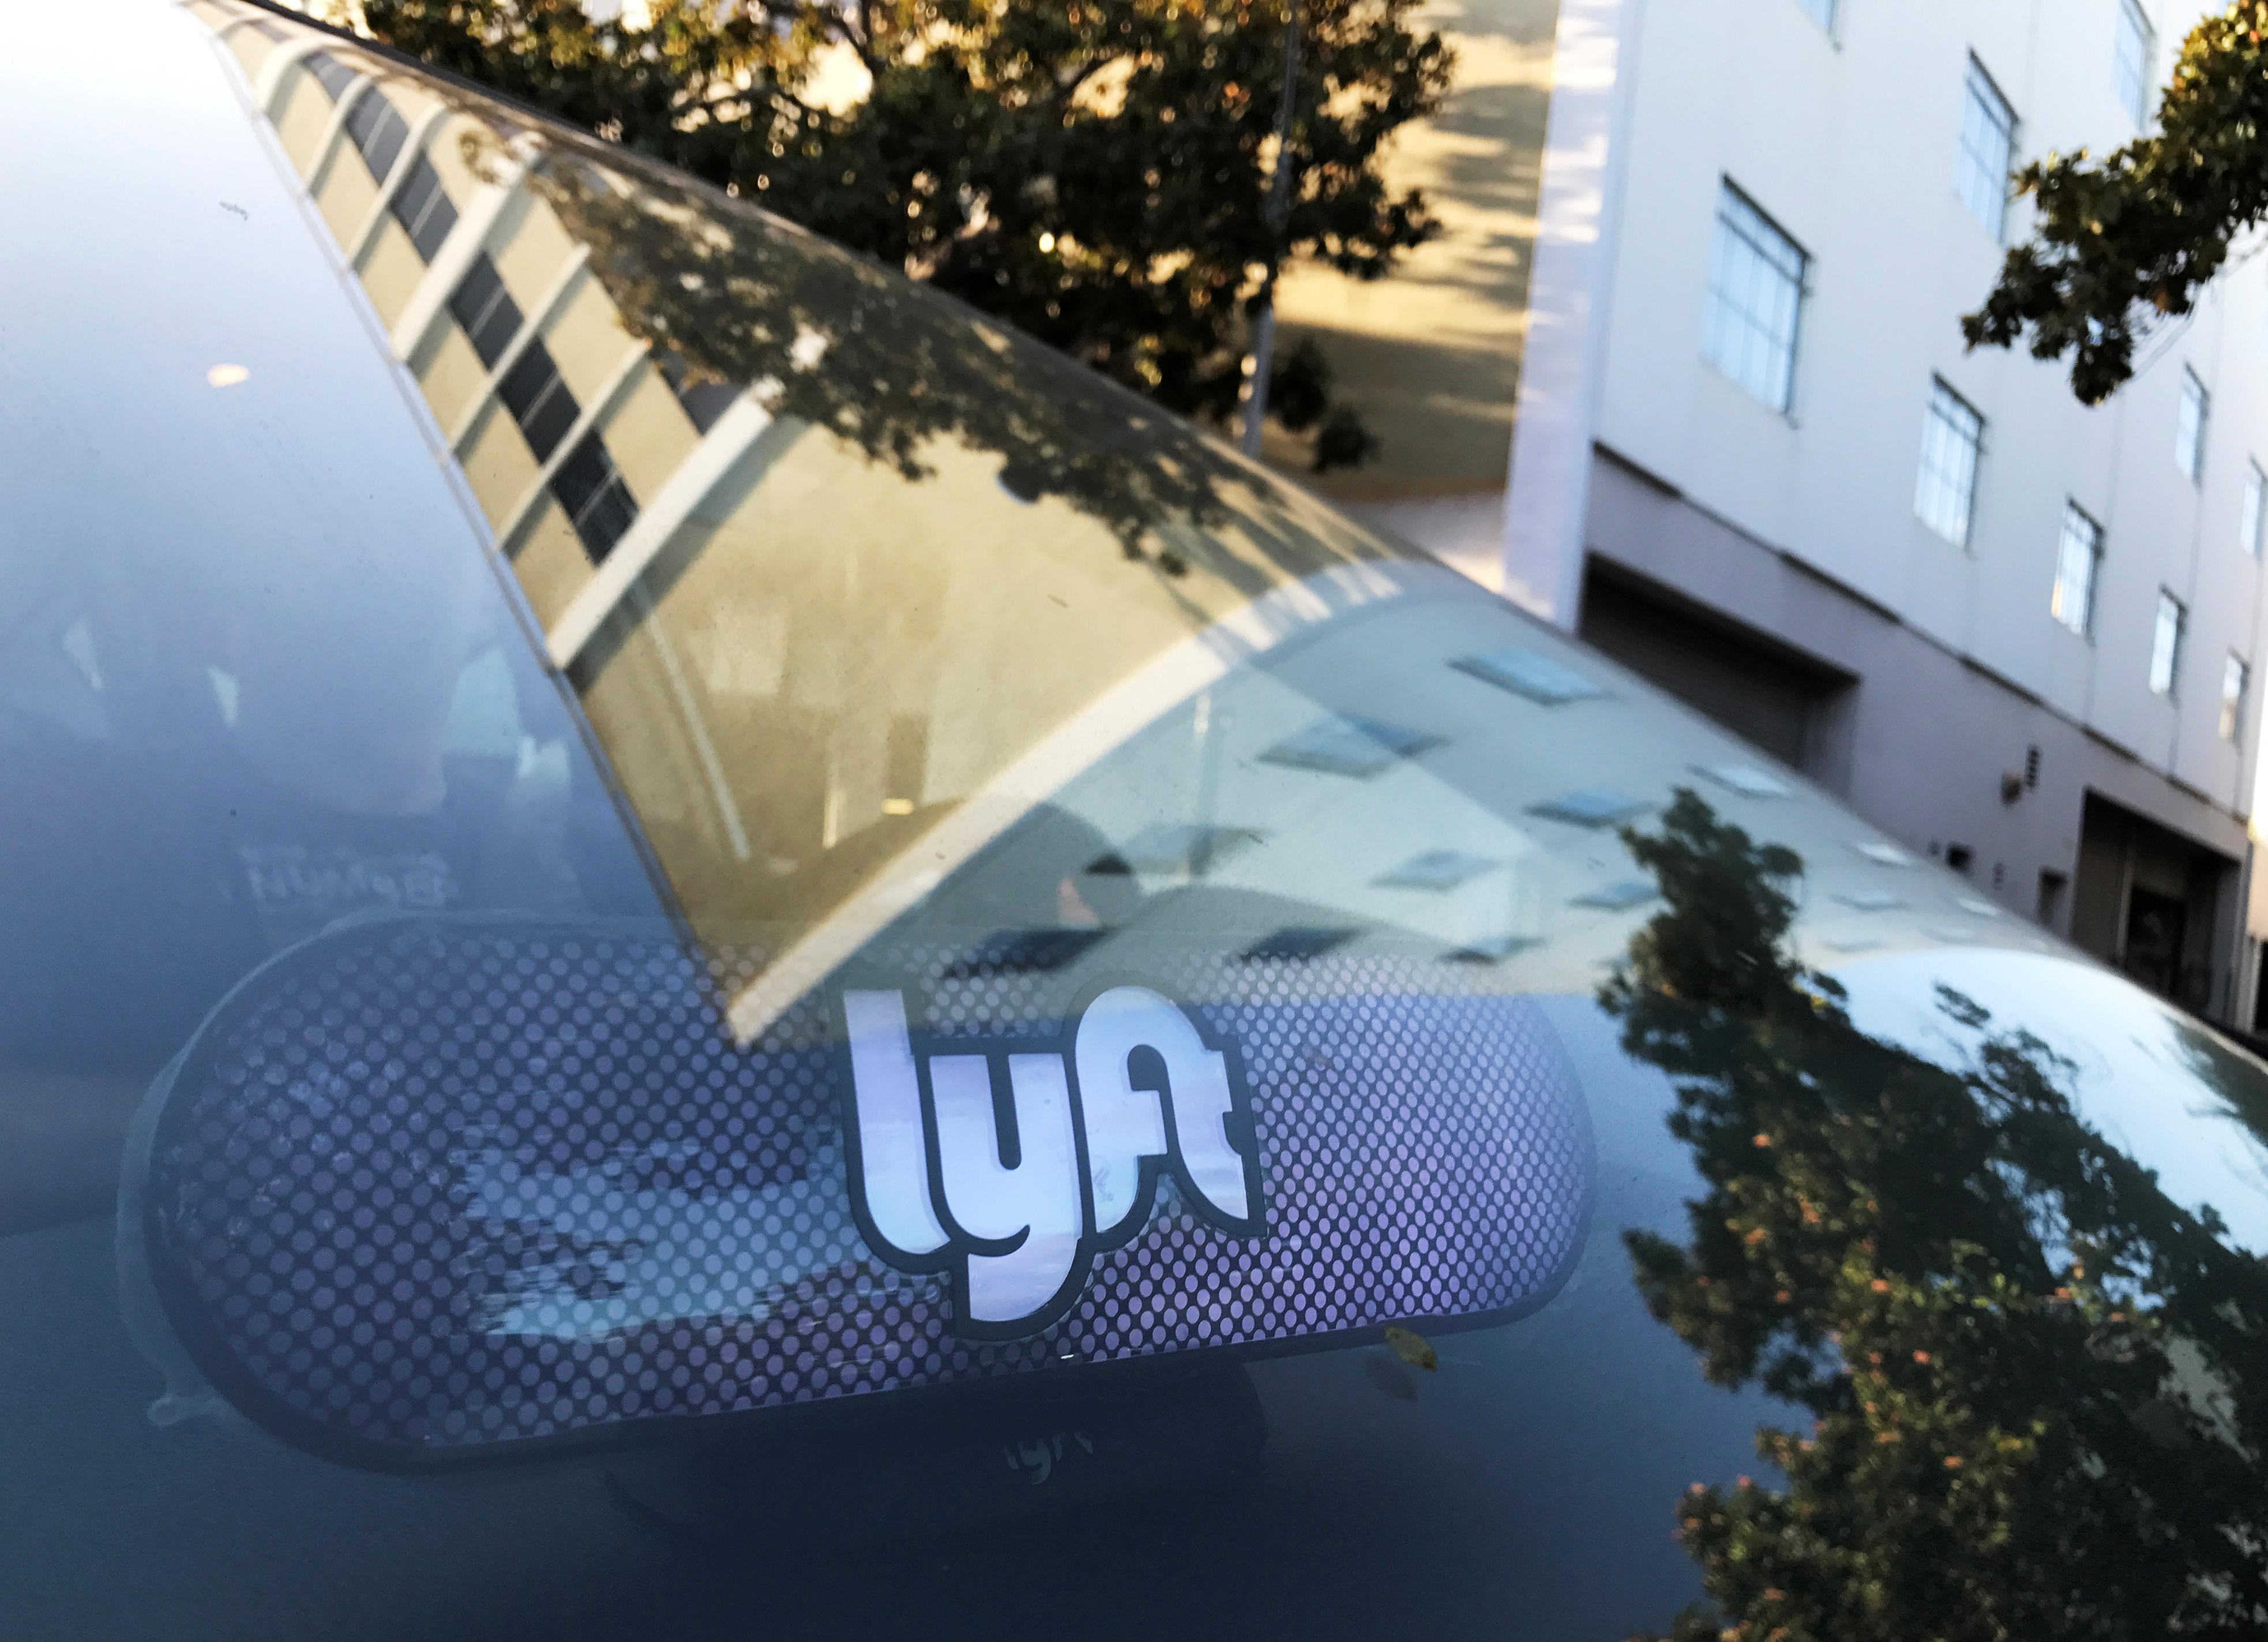 Exclusive: Lyft plans to launch its IPO roadshow week of March 18